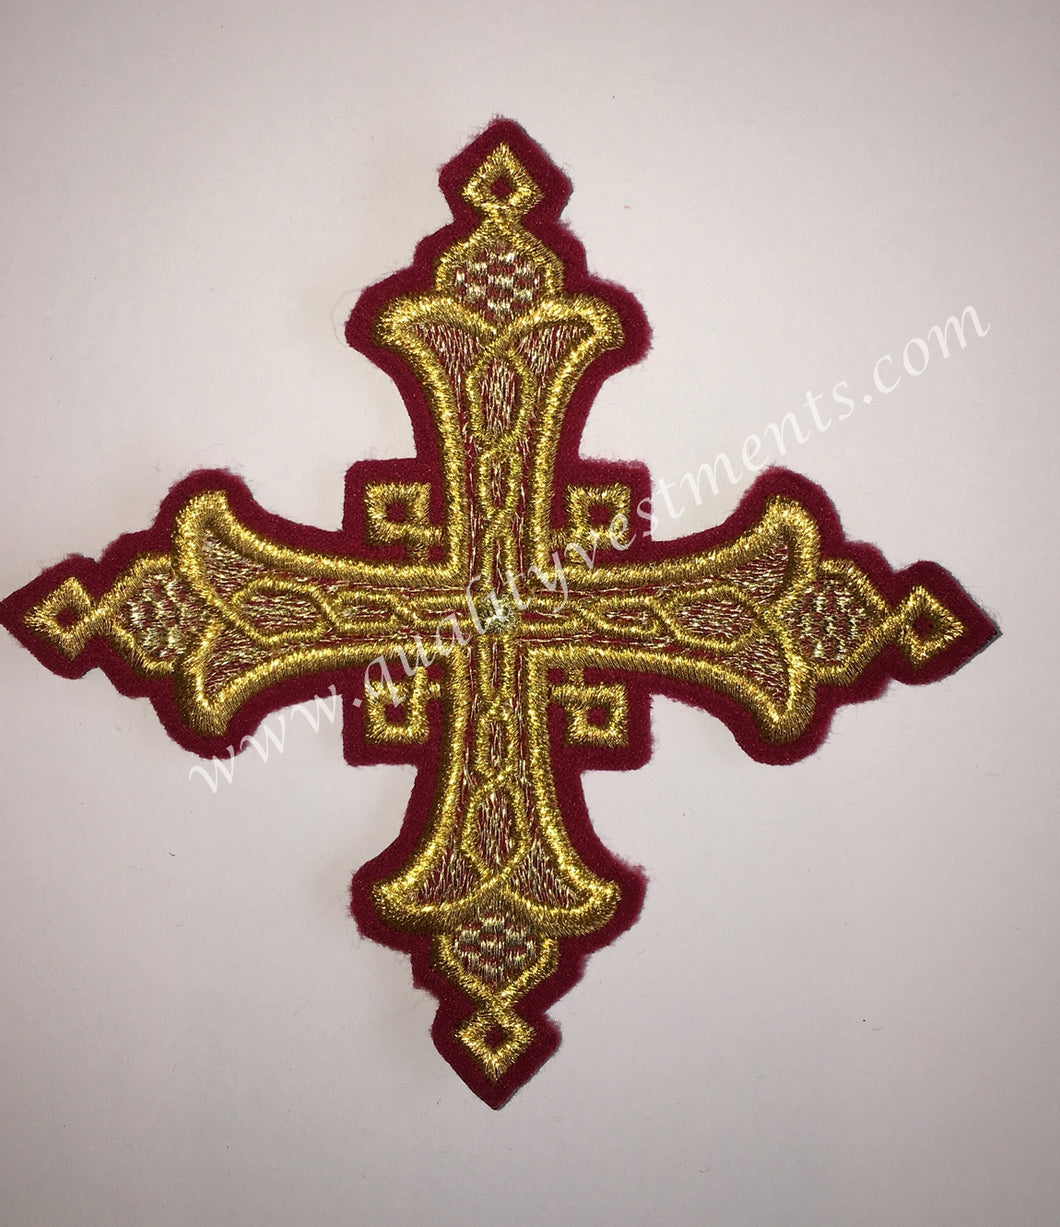 TO ORDER: Church Liturgical Embroidered Cross